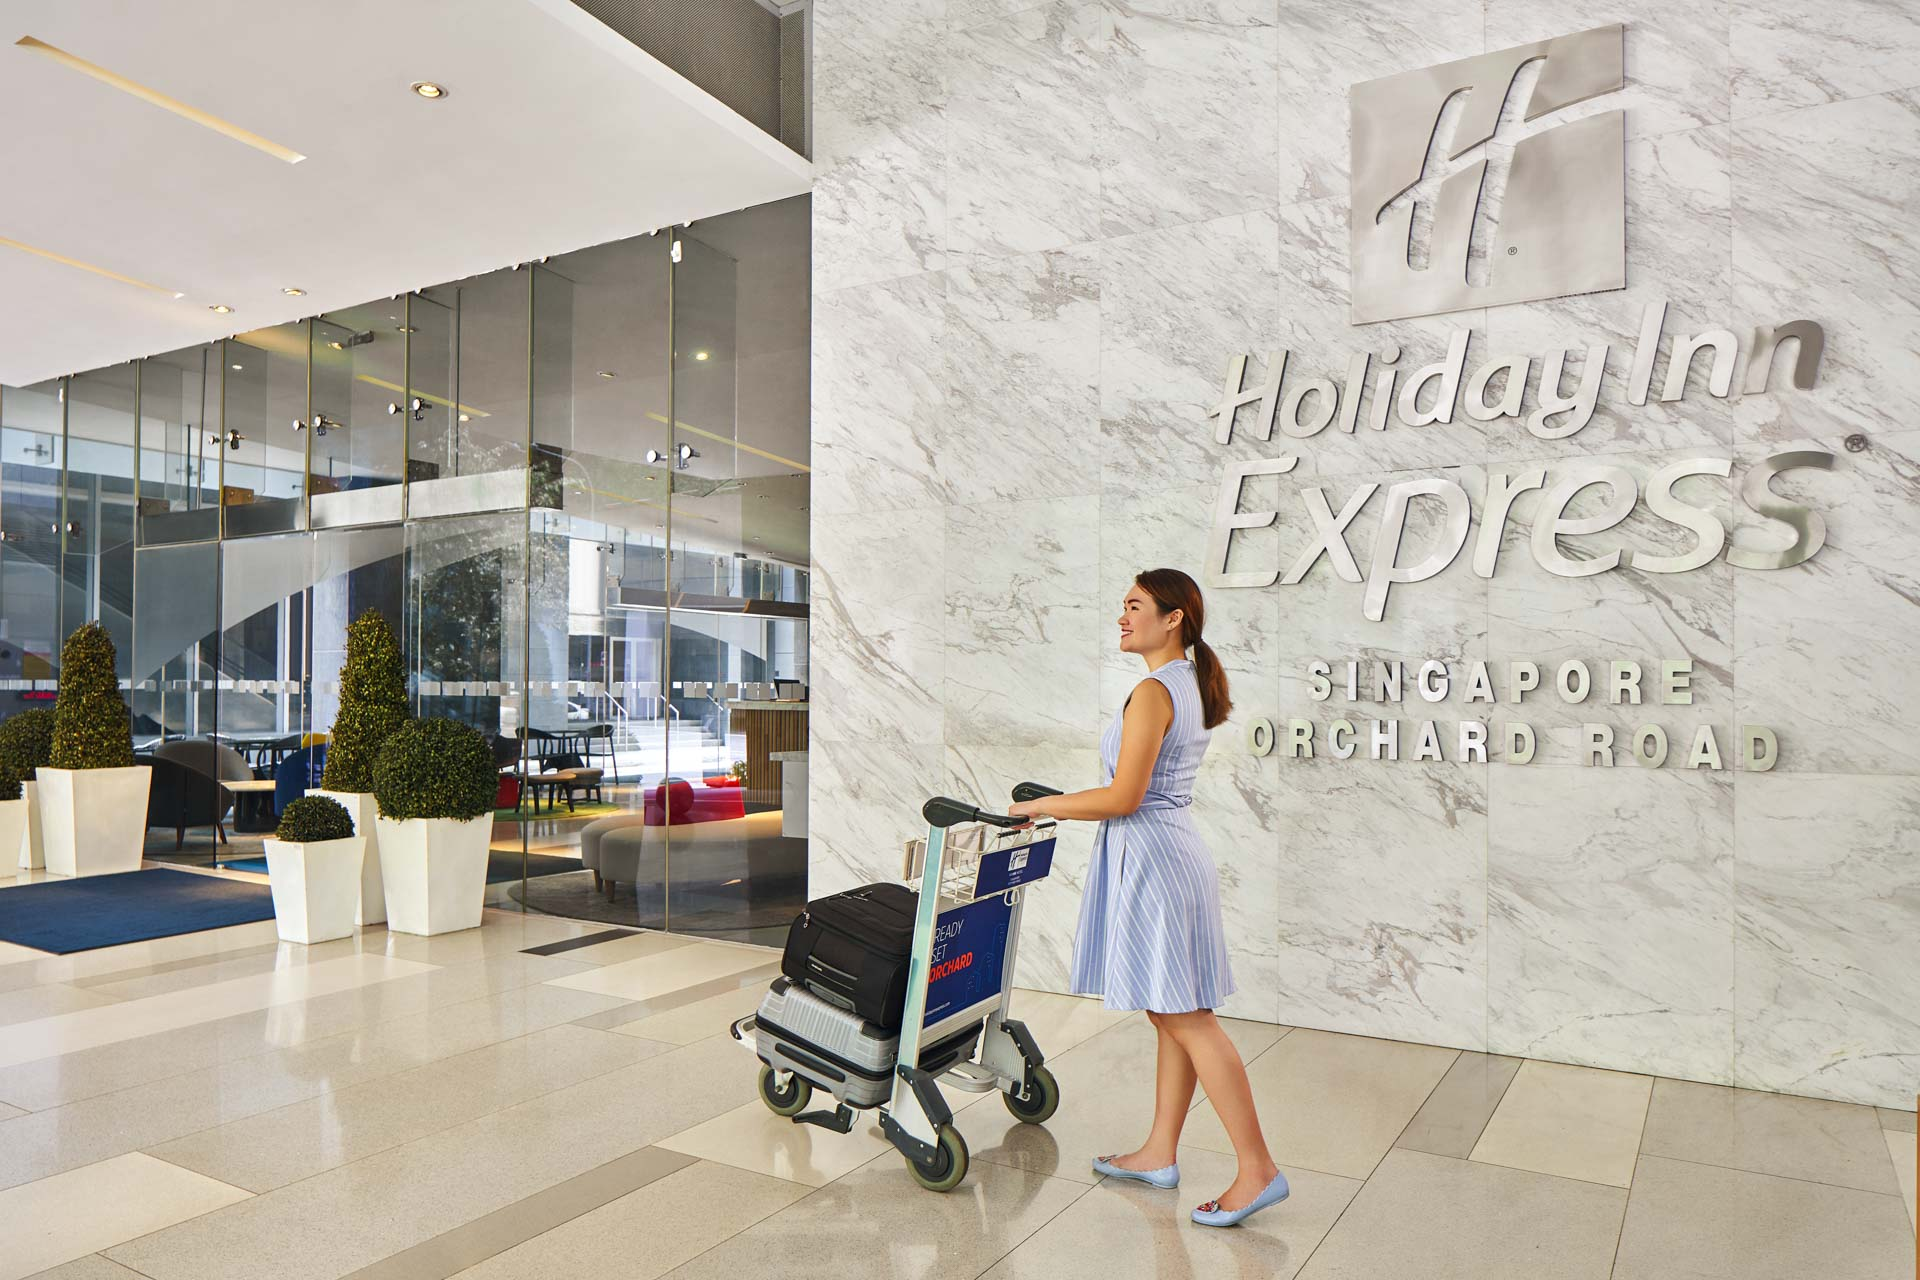 woman walking with luggage cart at the hotel entrace at holiday inn express in singapore